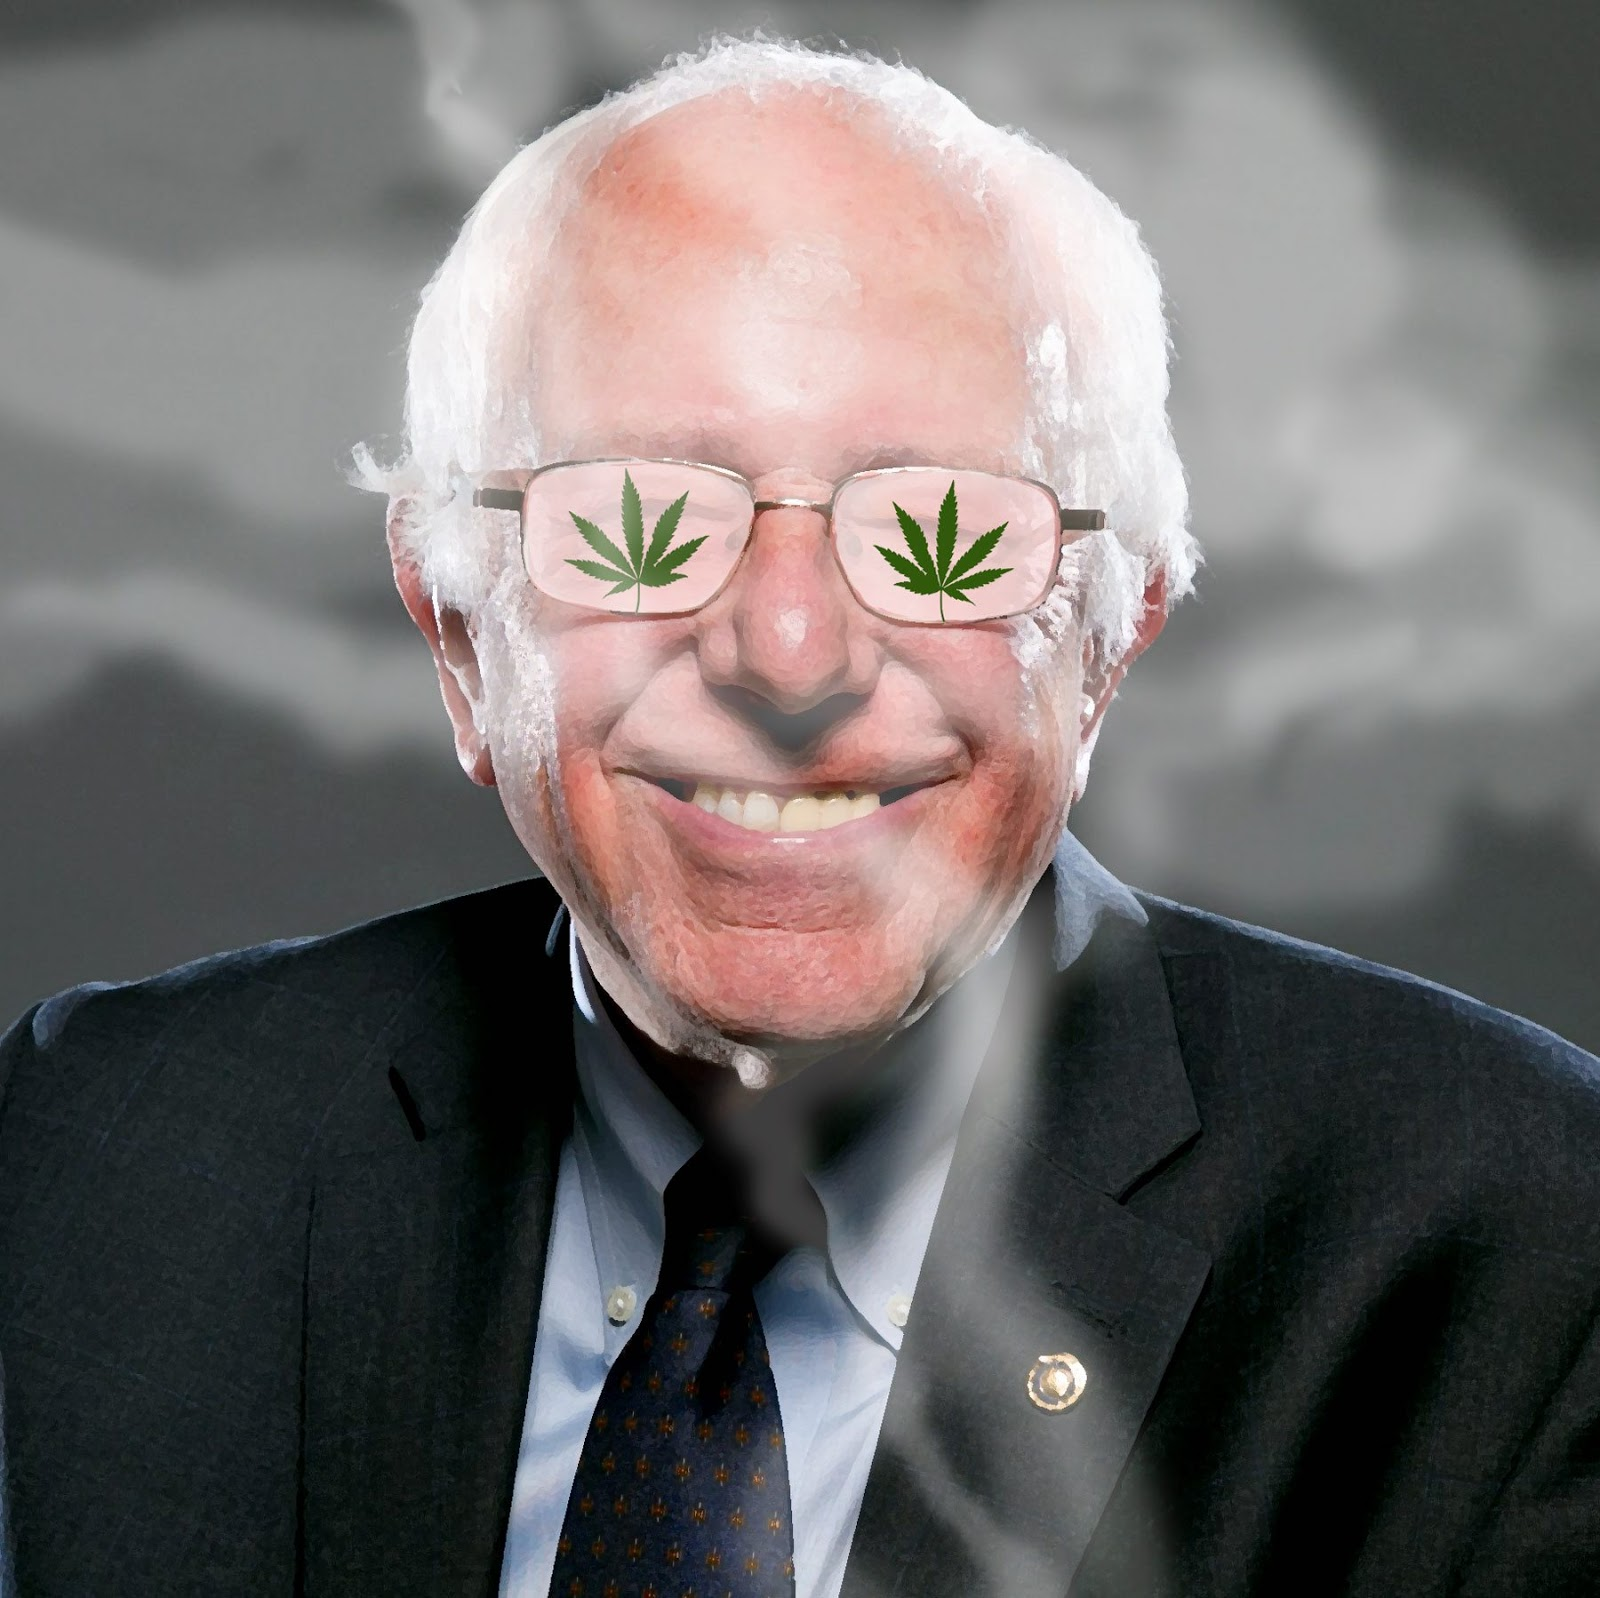 politicians that smoke weed